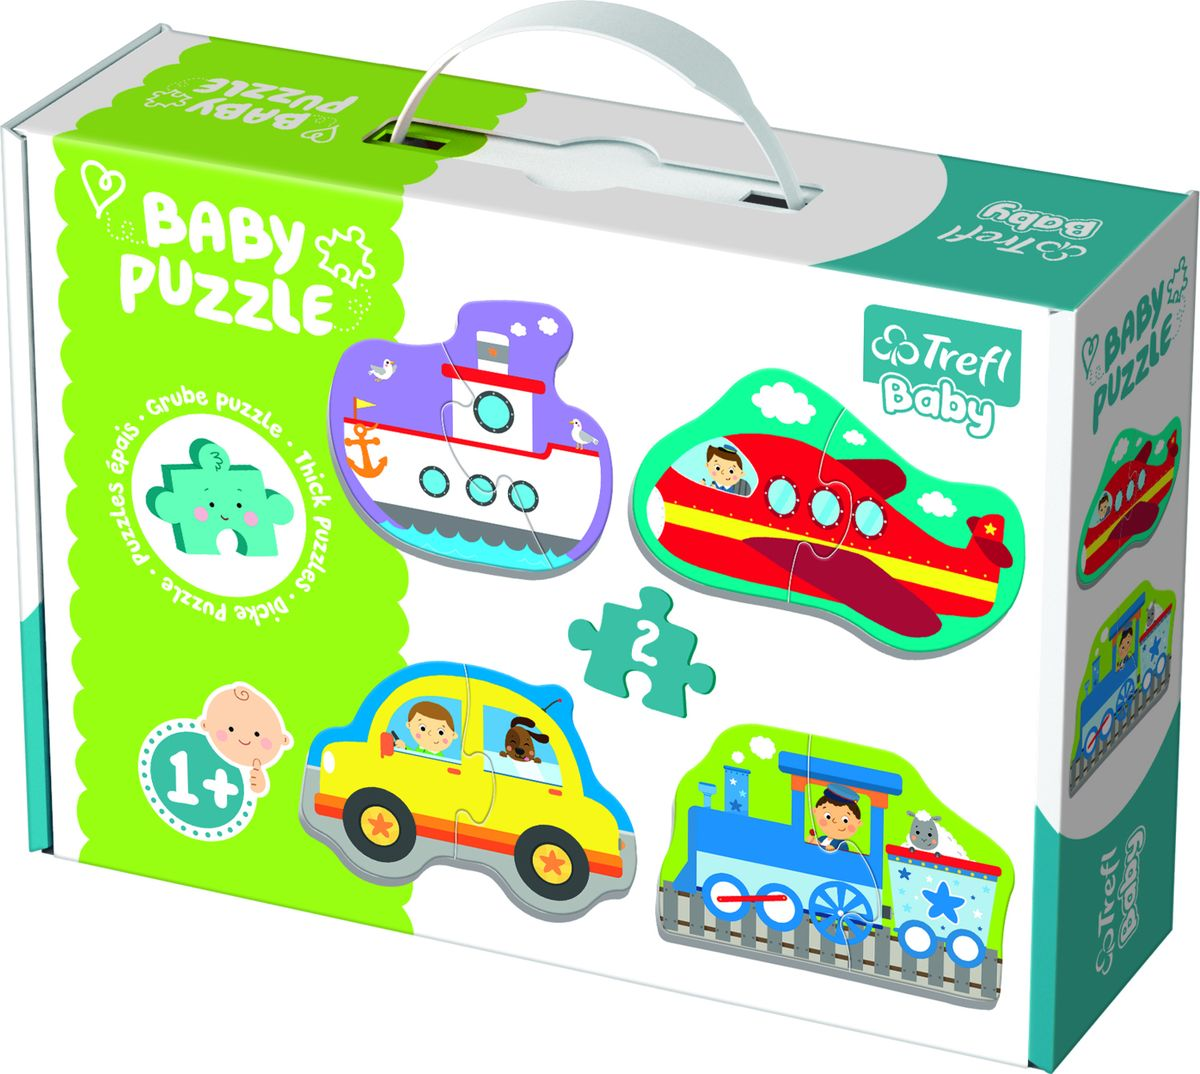 BABY PUZZLE TRANSPORT VEHICLES